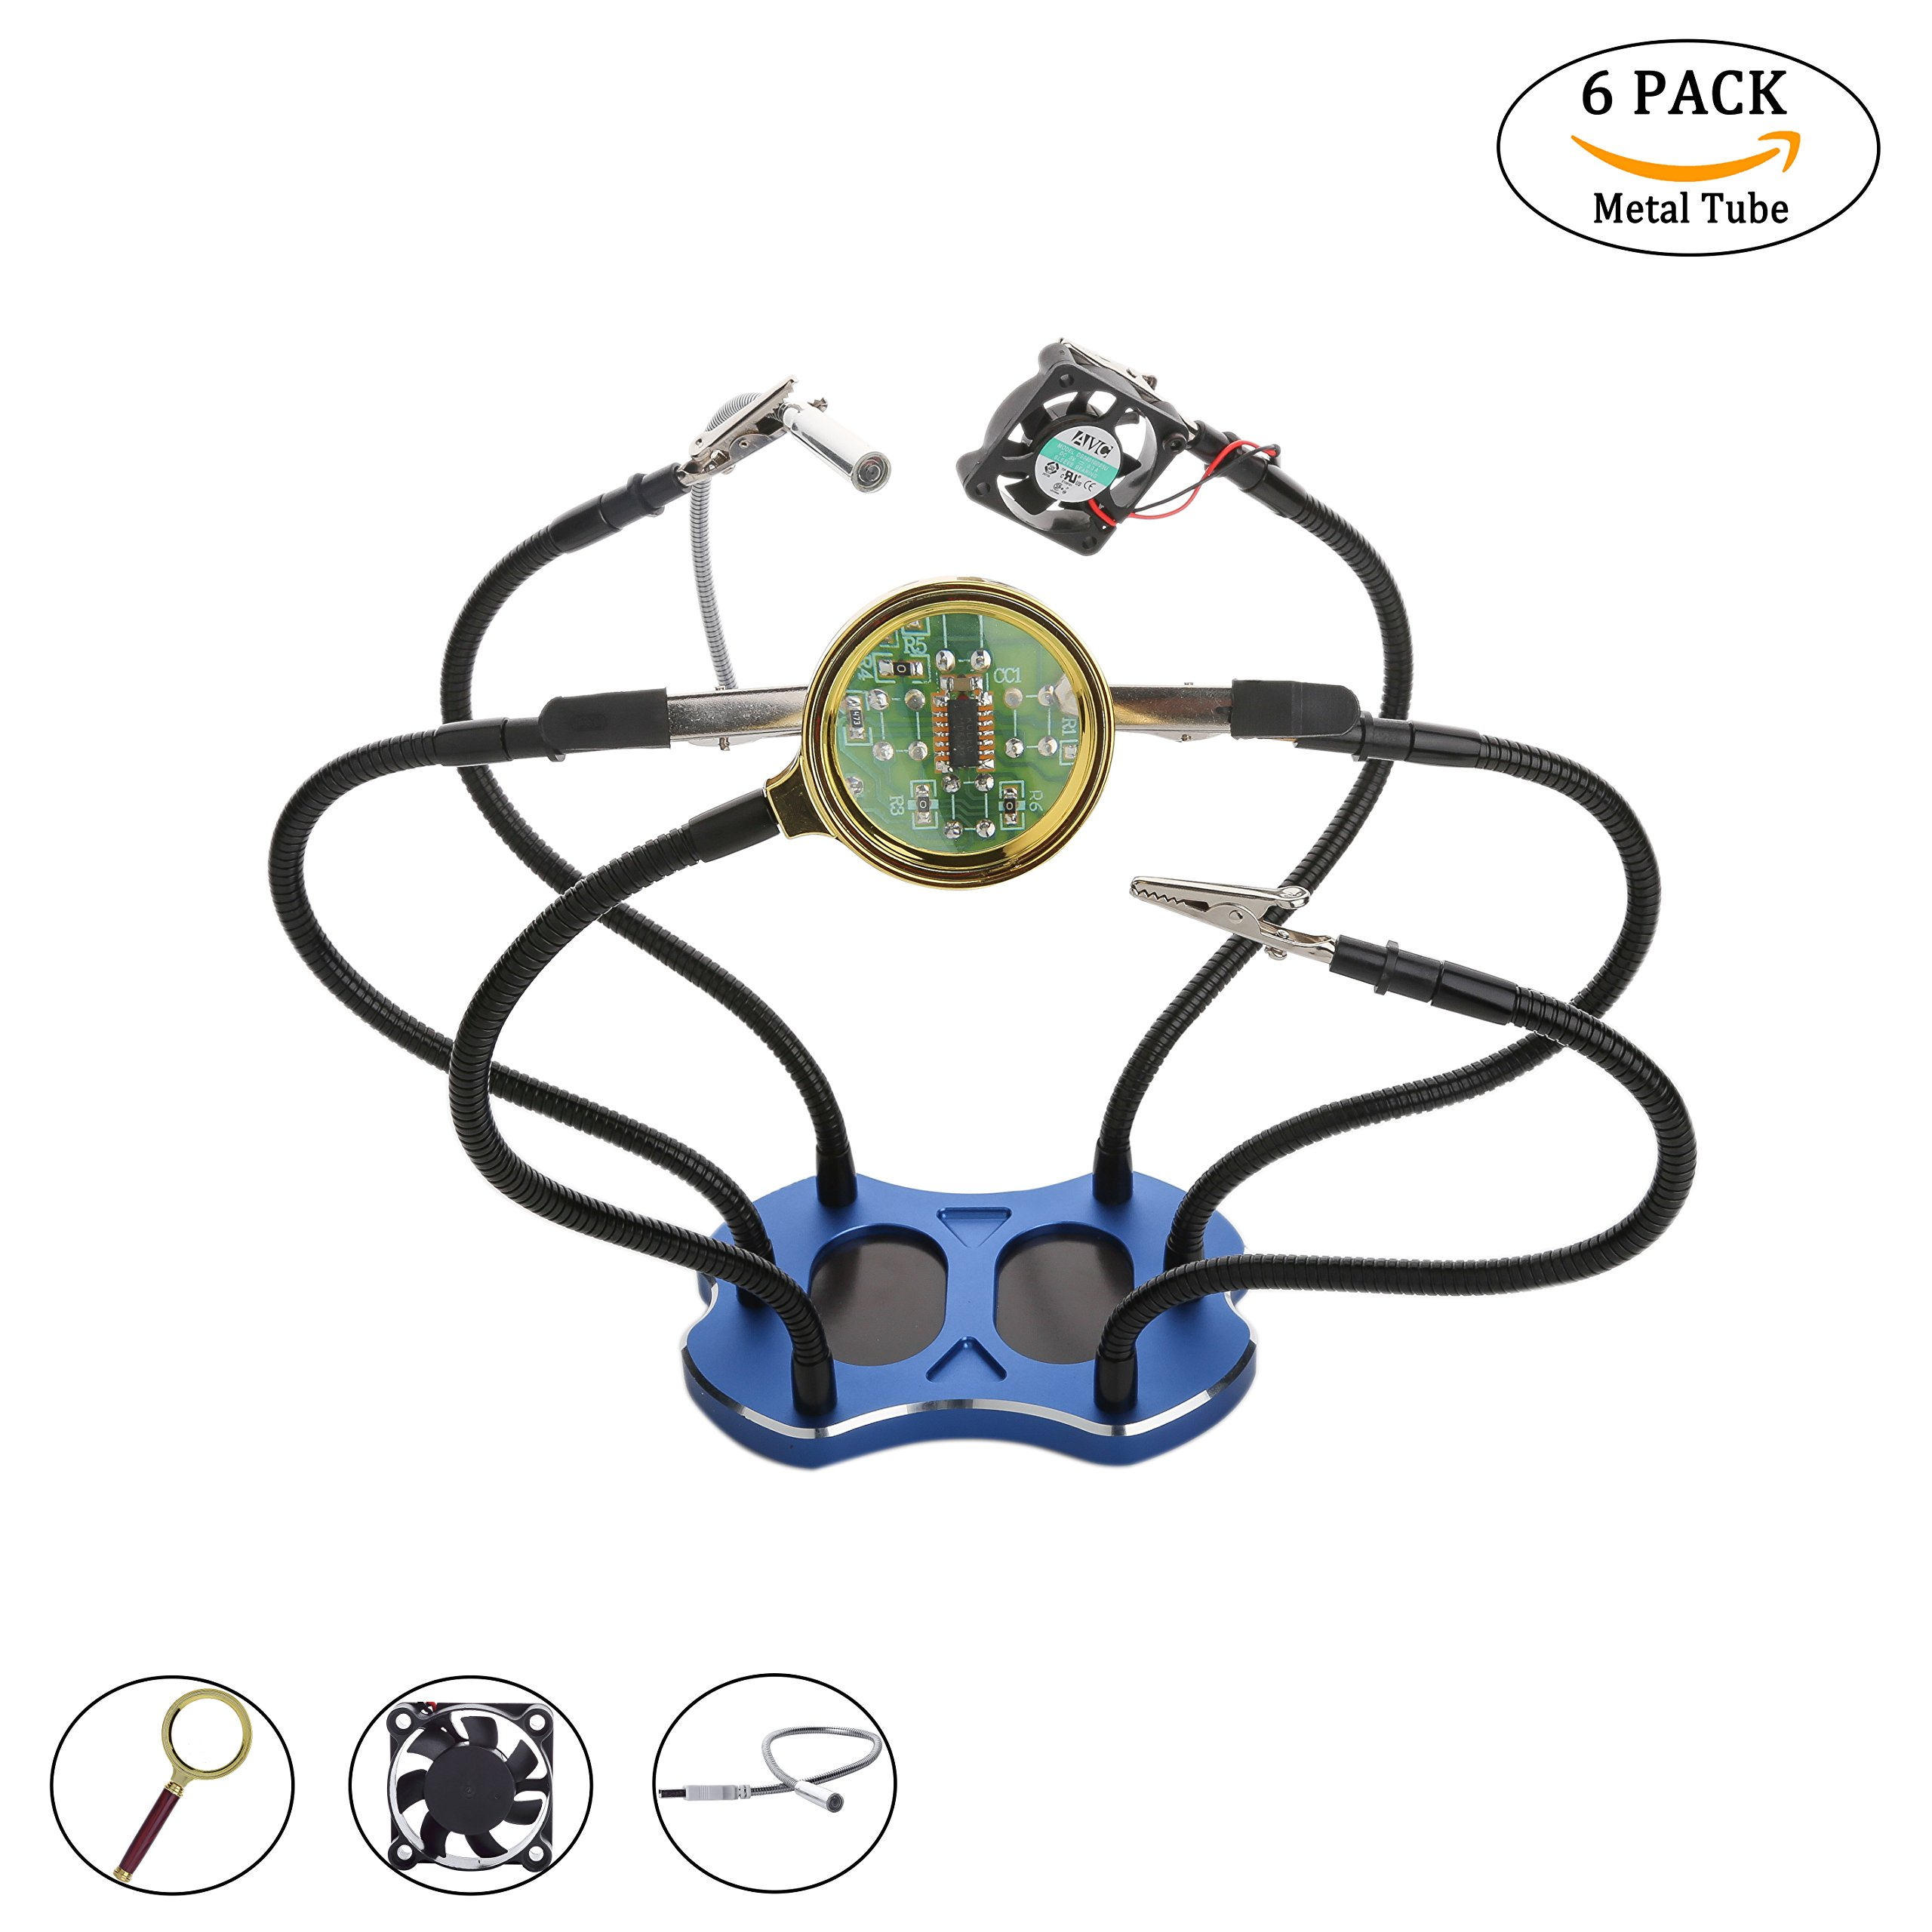 Helping Hand with Magnifying Glass Soldering Station Tool Third Hand for Soldering,Assembly,Repair,Modeling,Hobby and Craft Jewelry Making Tools and Accessories with 6 Arms,DC Fan,LED